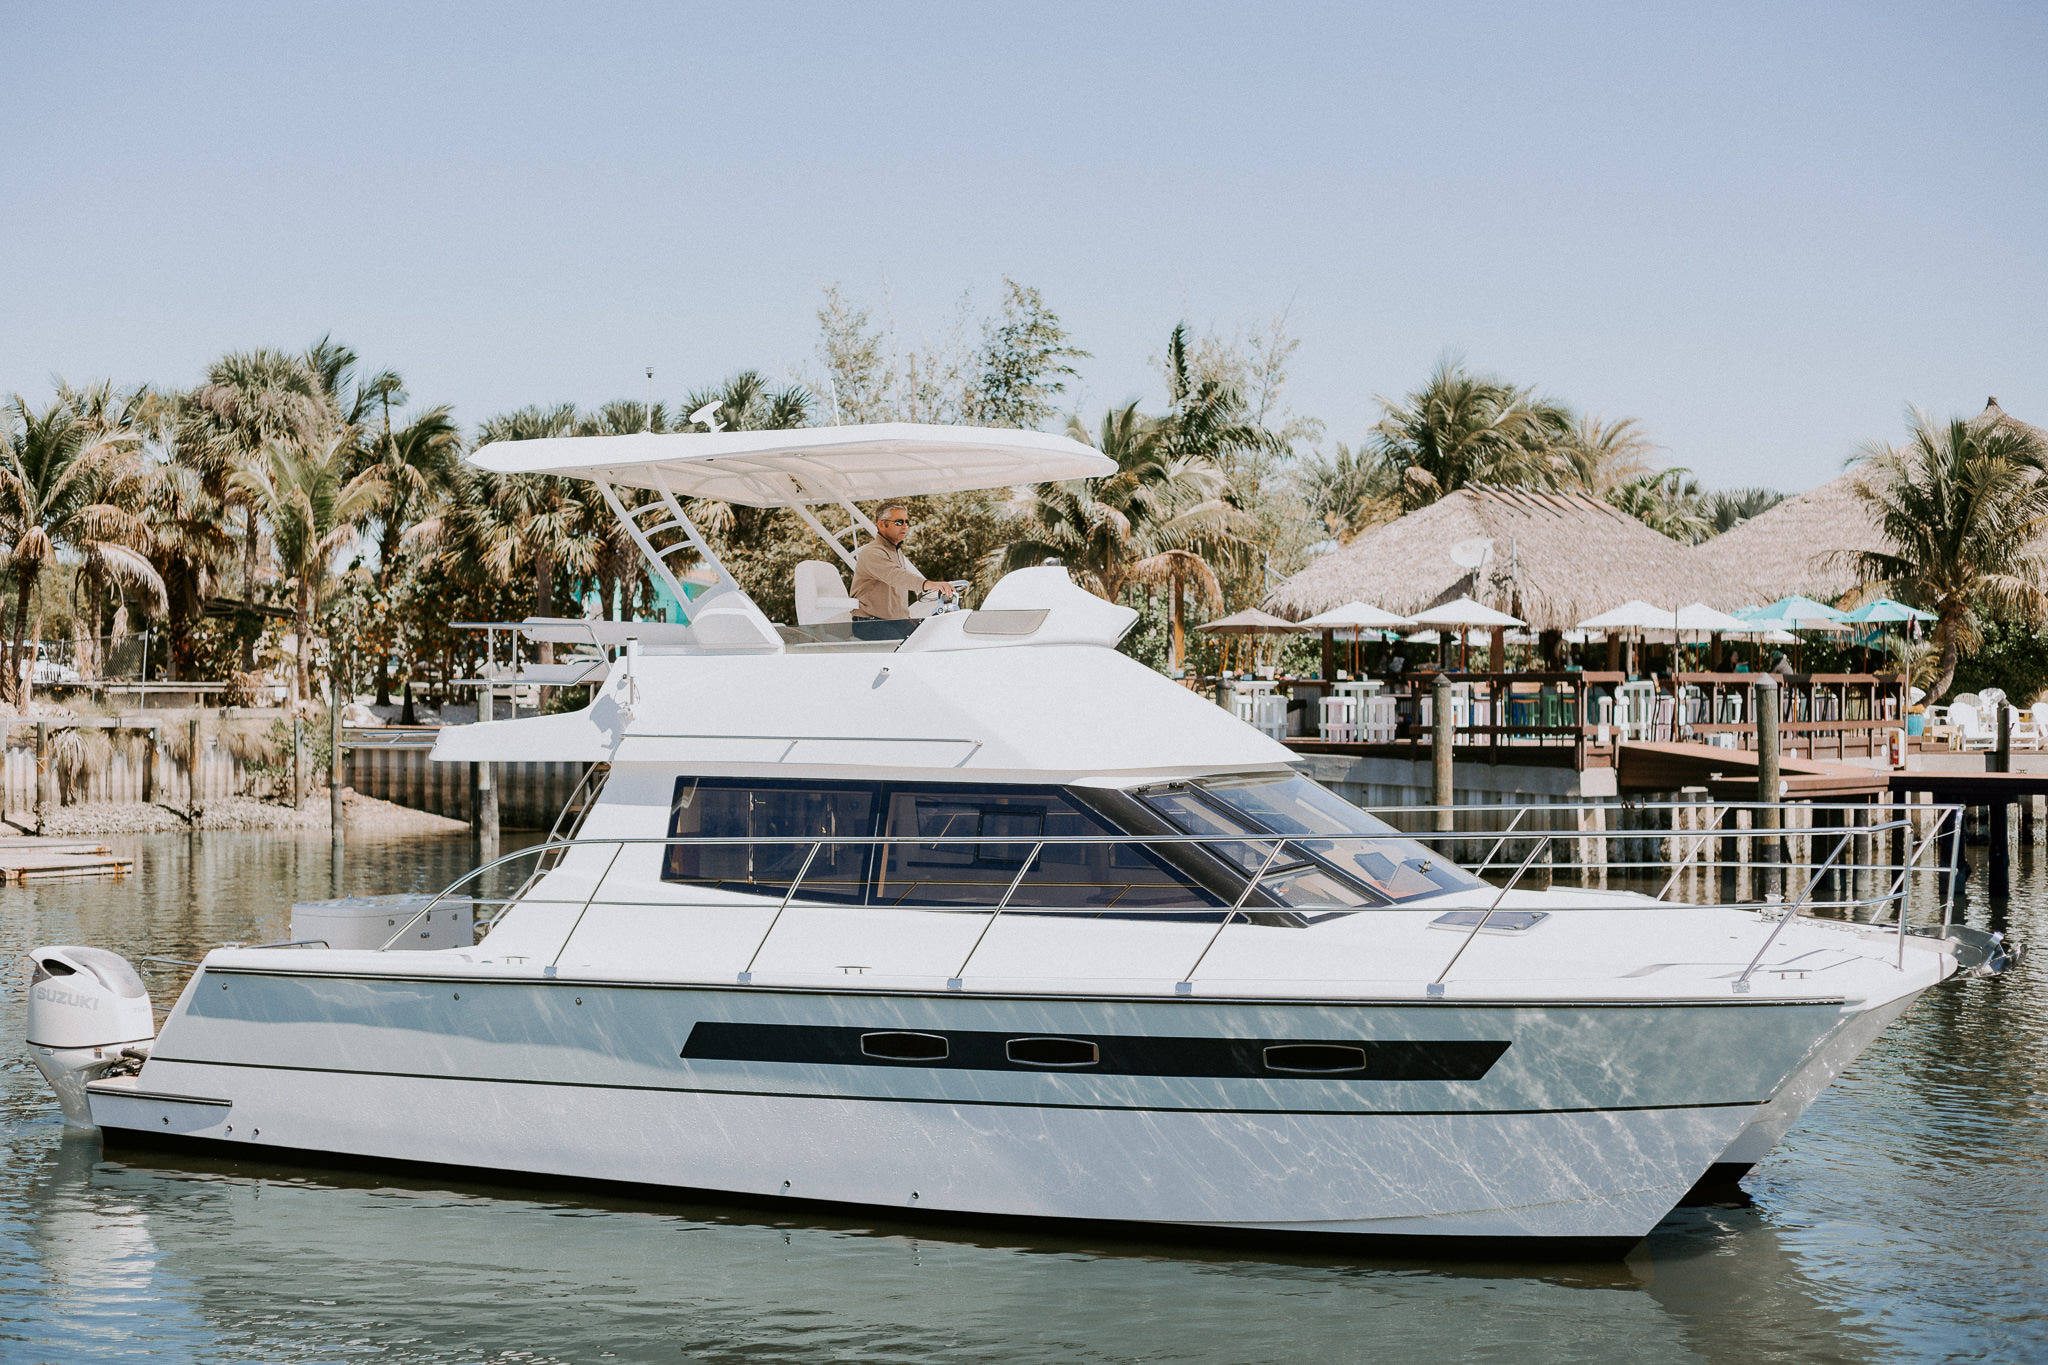 Boat exterior on the water